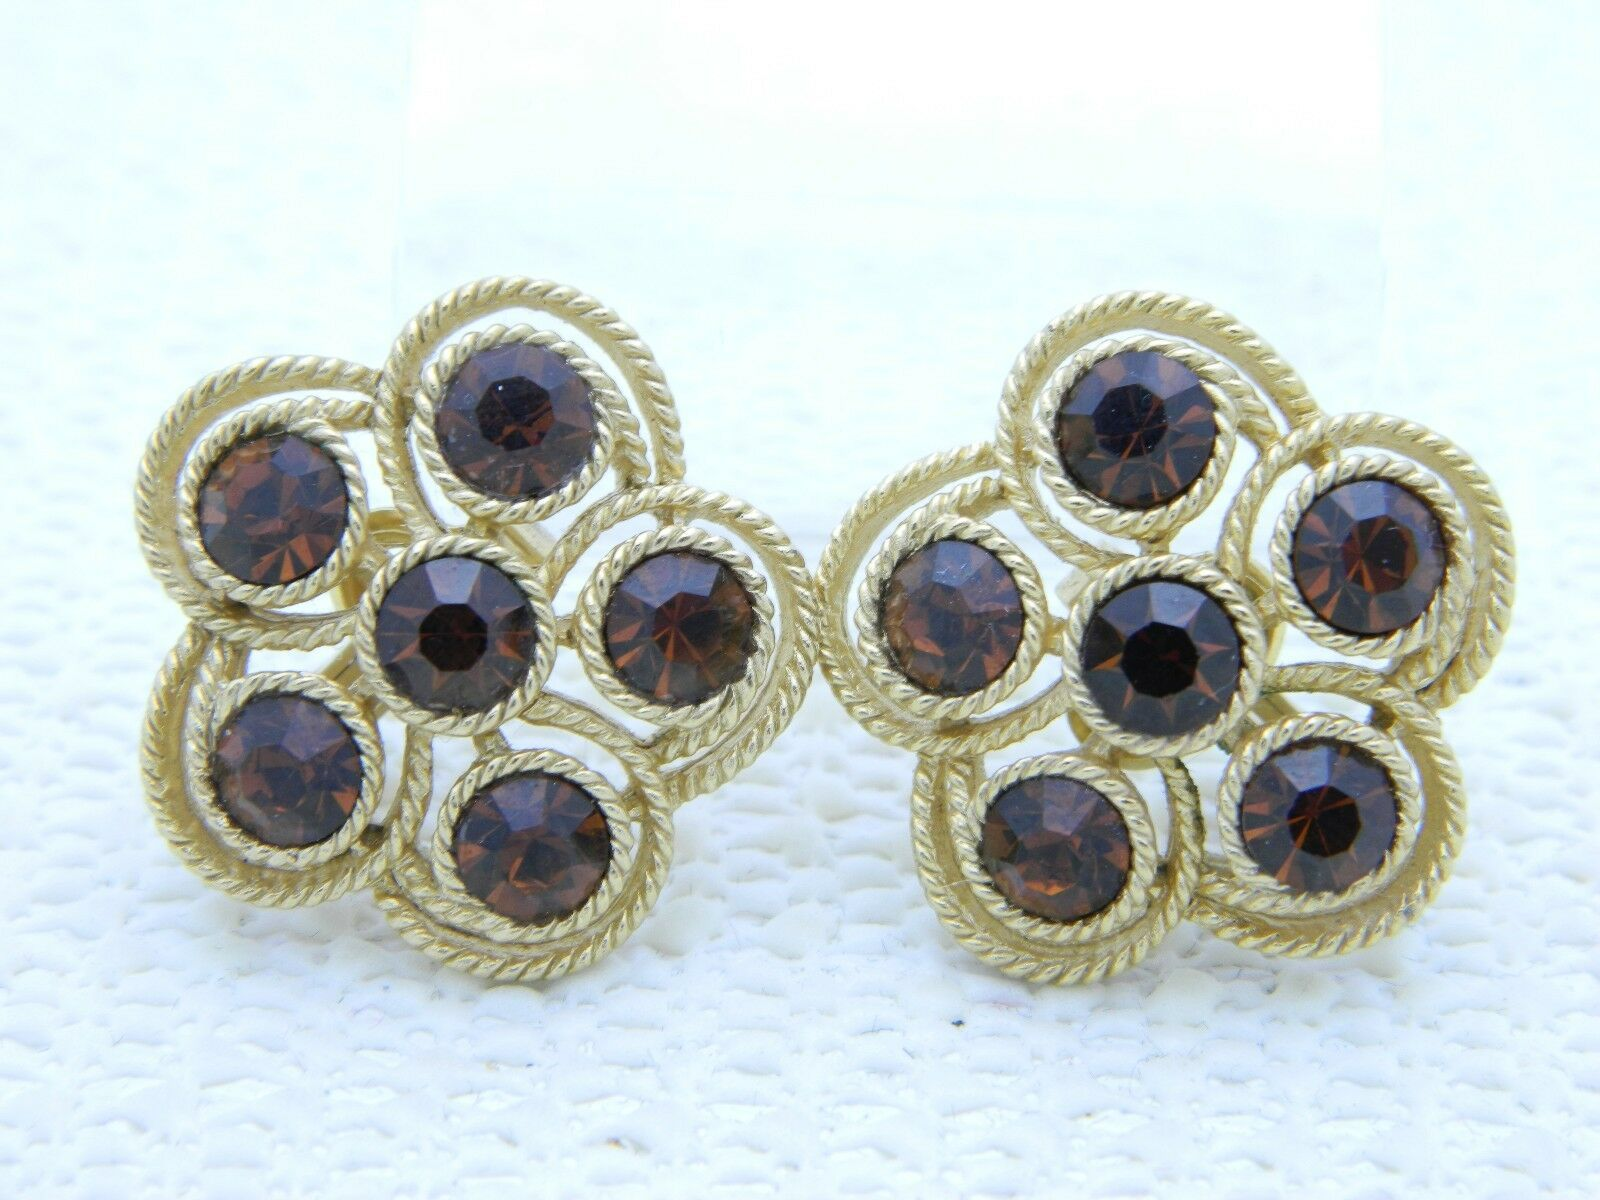 VTG RARE CROWN TRIFARI Gold Tone Topaz Rhinestone Flower Clip Earrings